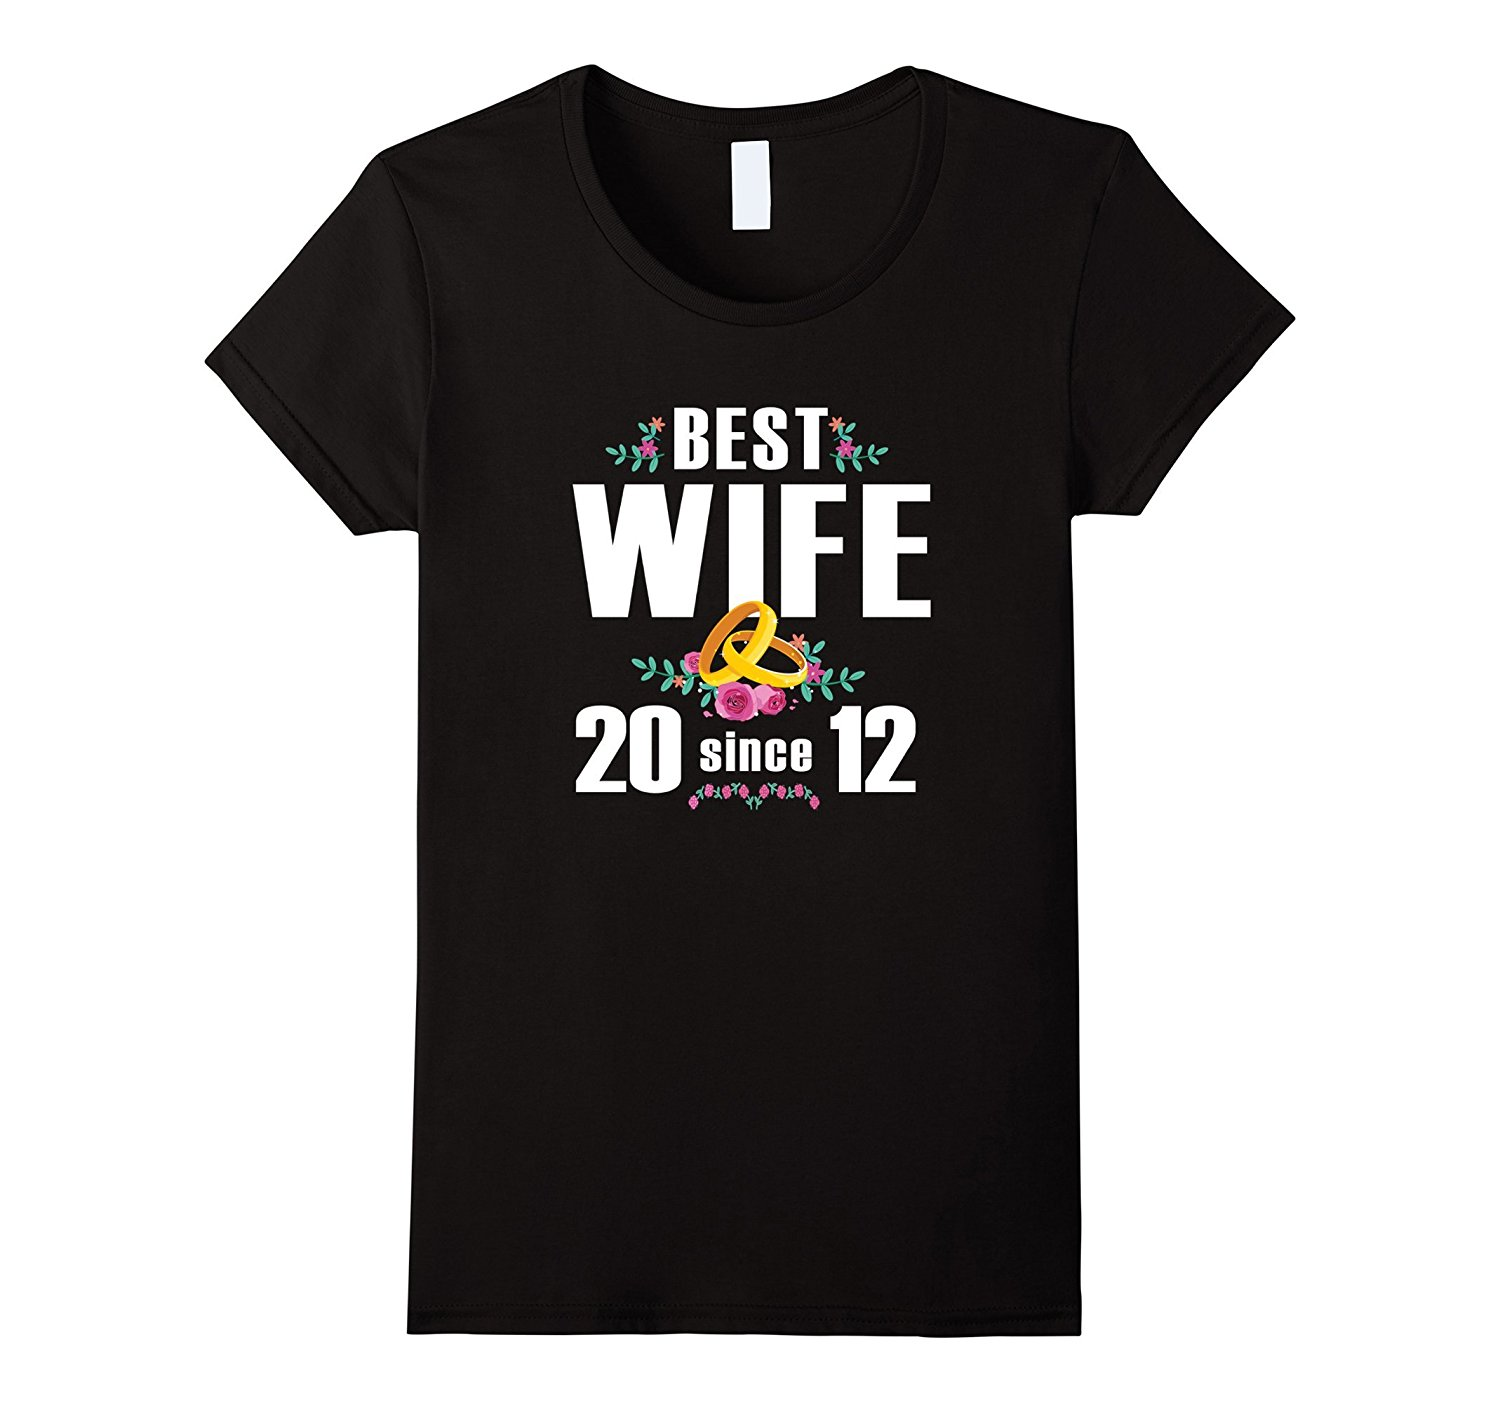 Best Wife Since 2012 T-Shirt 5th Anniversary Gift Shirt Female Harajuk Fashion Drake Fitness Punk Tops Crazy Women T Shirt image